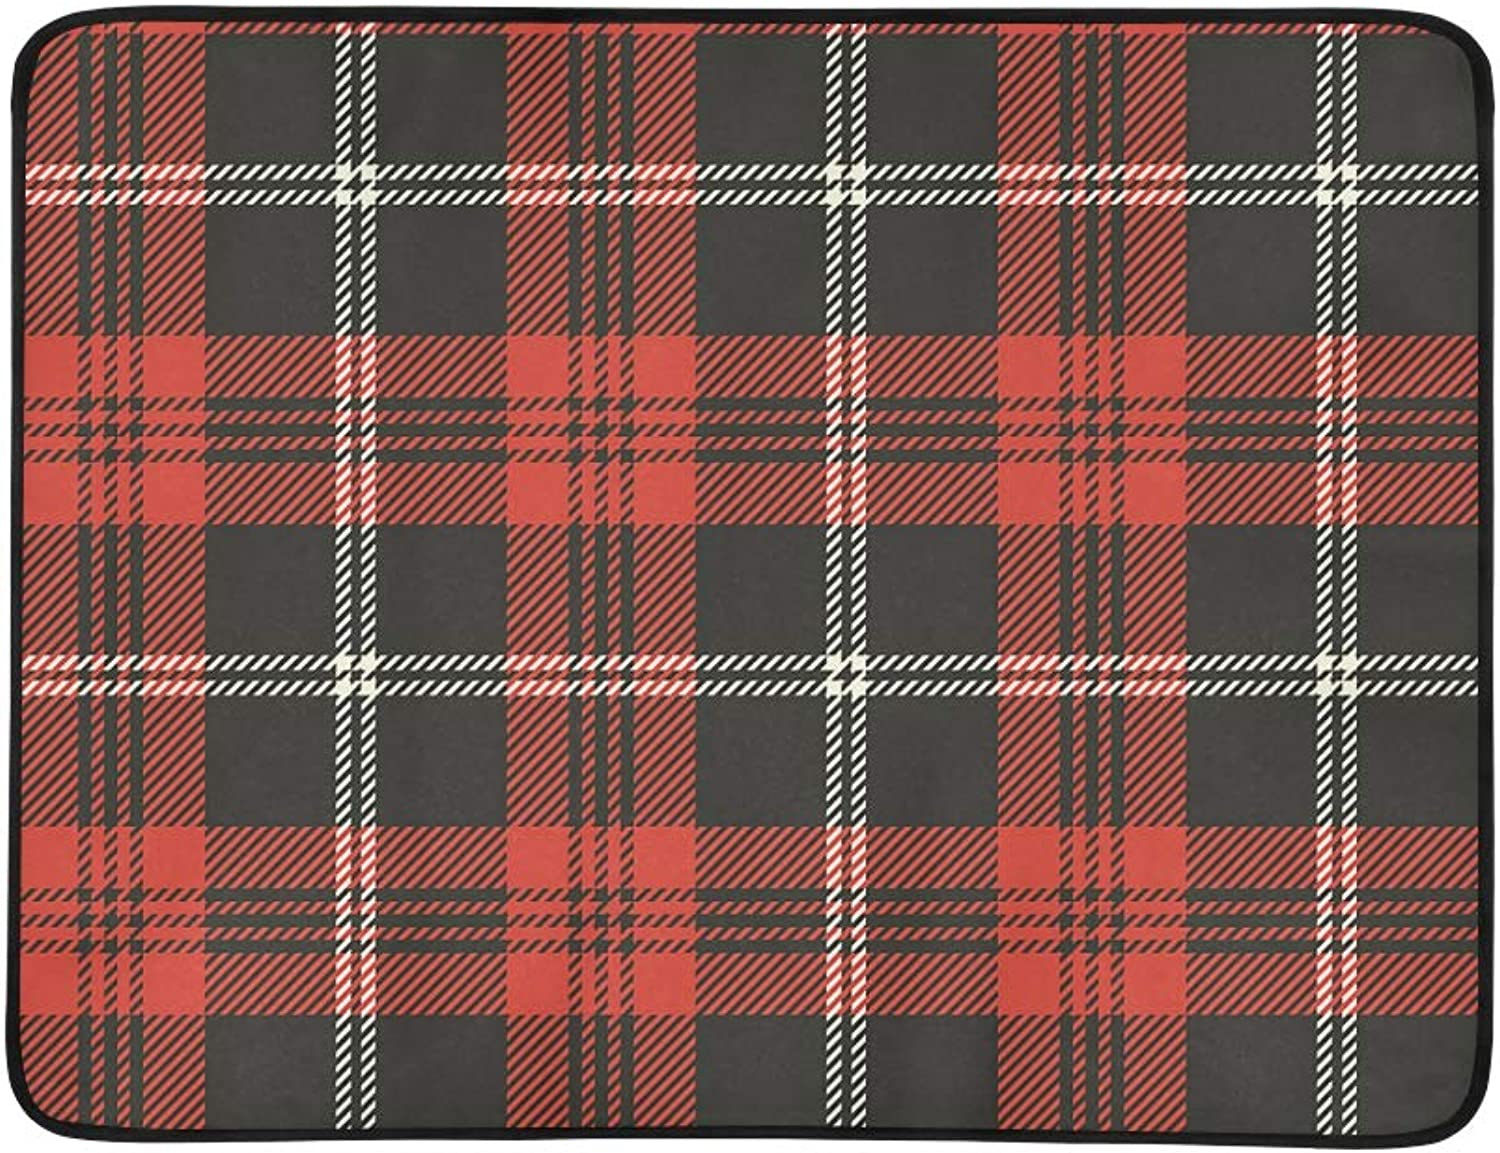 Black and Red Plaid with White Stripe Pattern Portable and Foldable Blanket Mat 60x78 Inch Handy Mat for Camping Picnic Beach Indoor Outdoor Travel